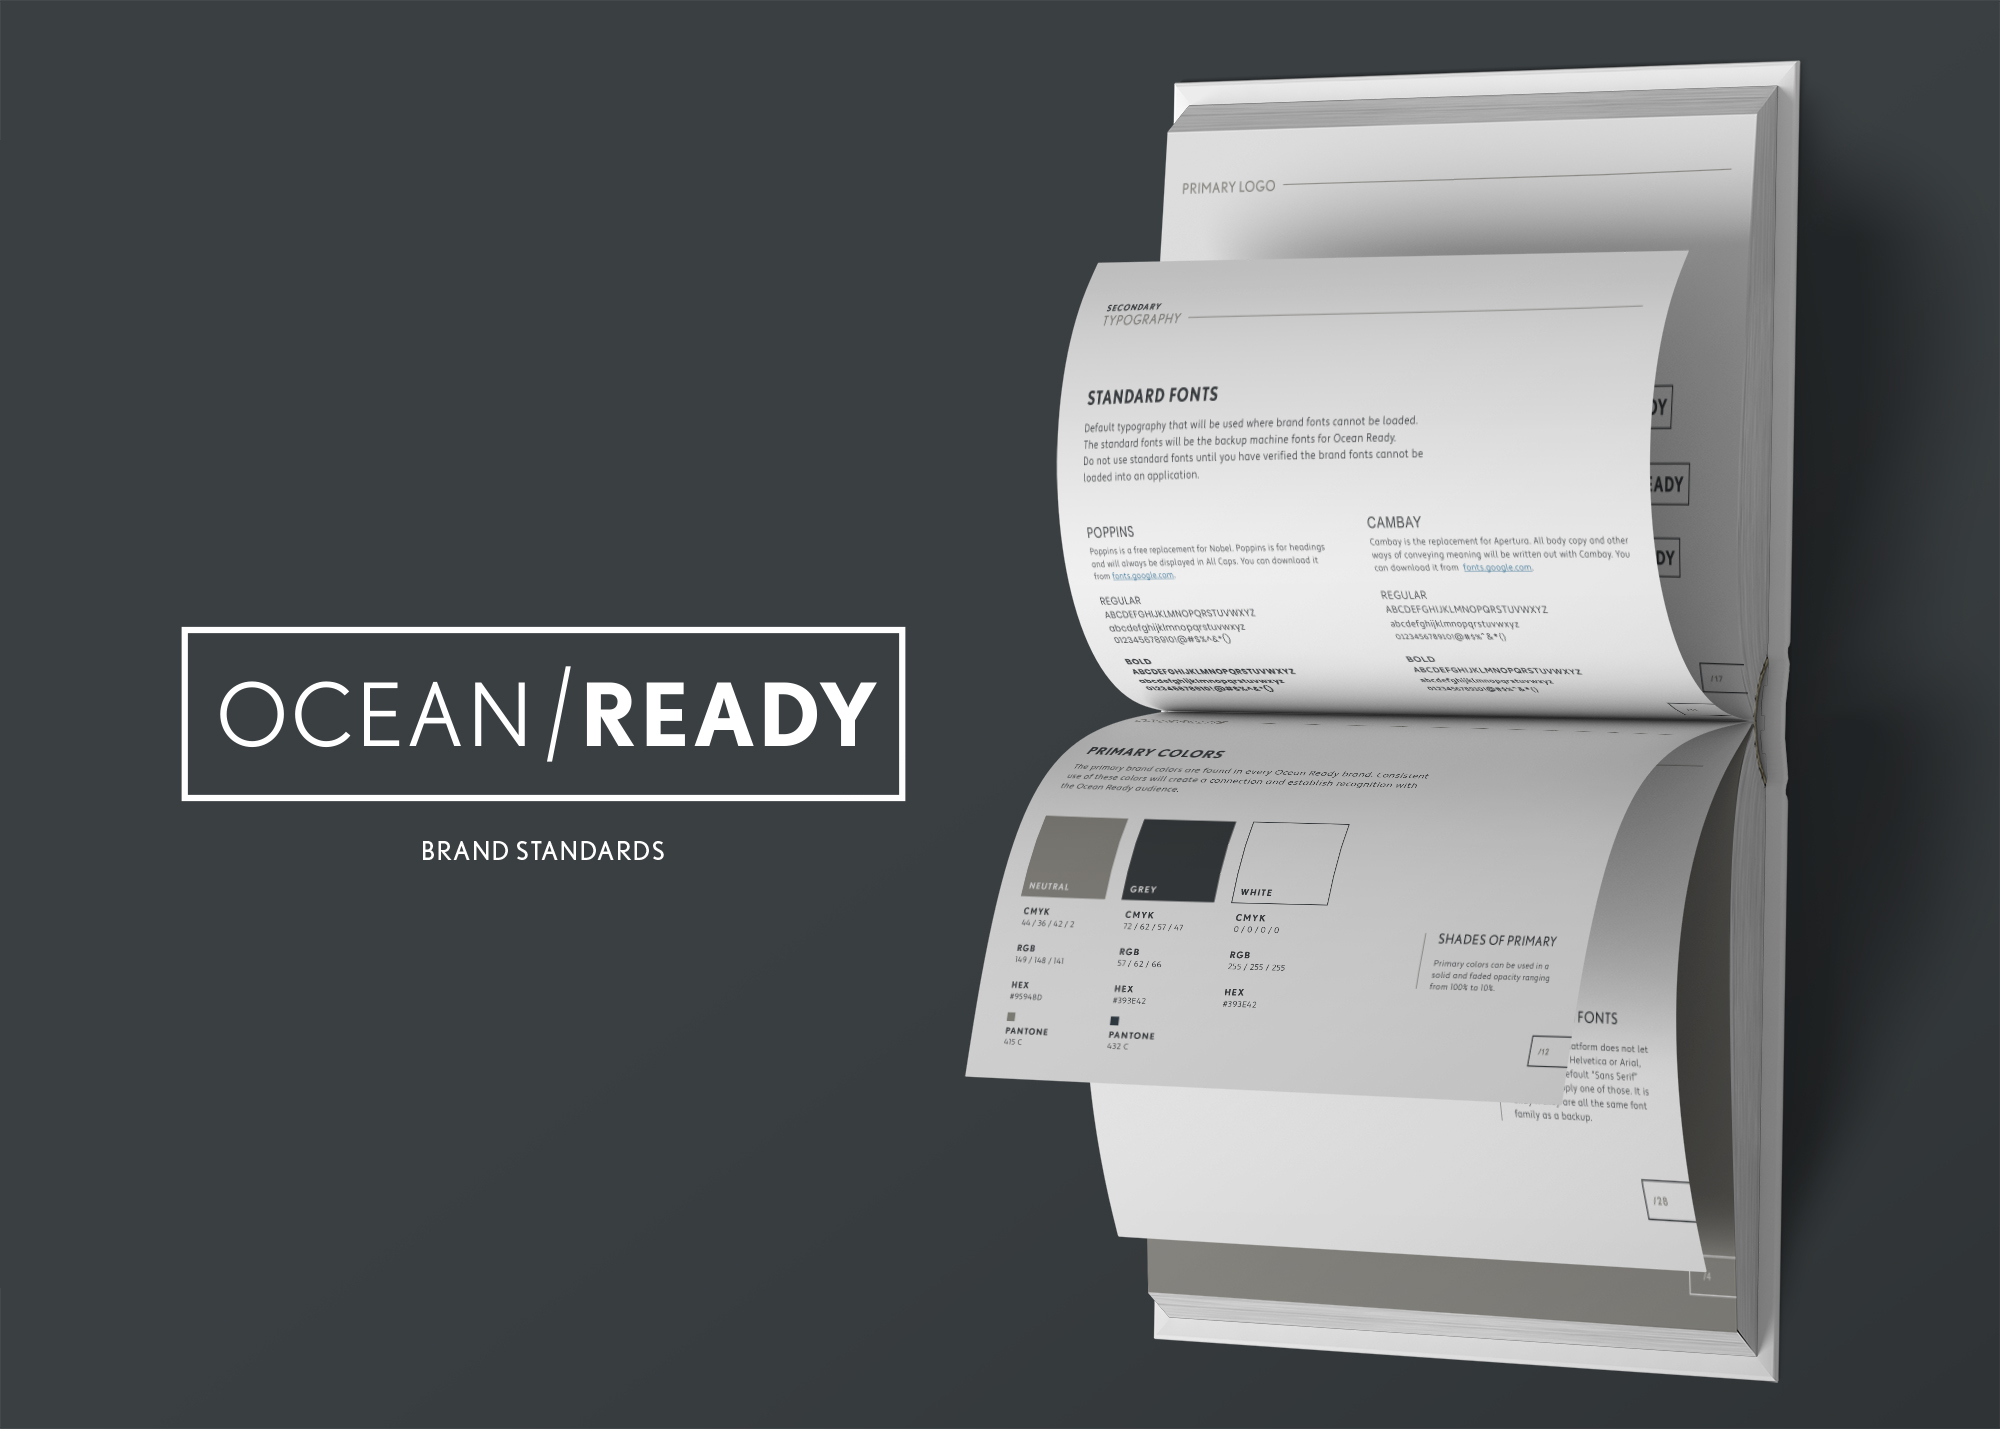 mockup of ocean ready brand standards manual created by hwl creative team